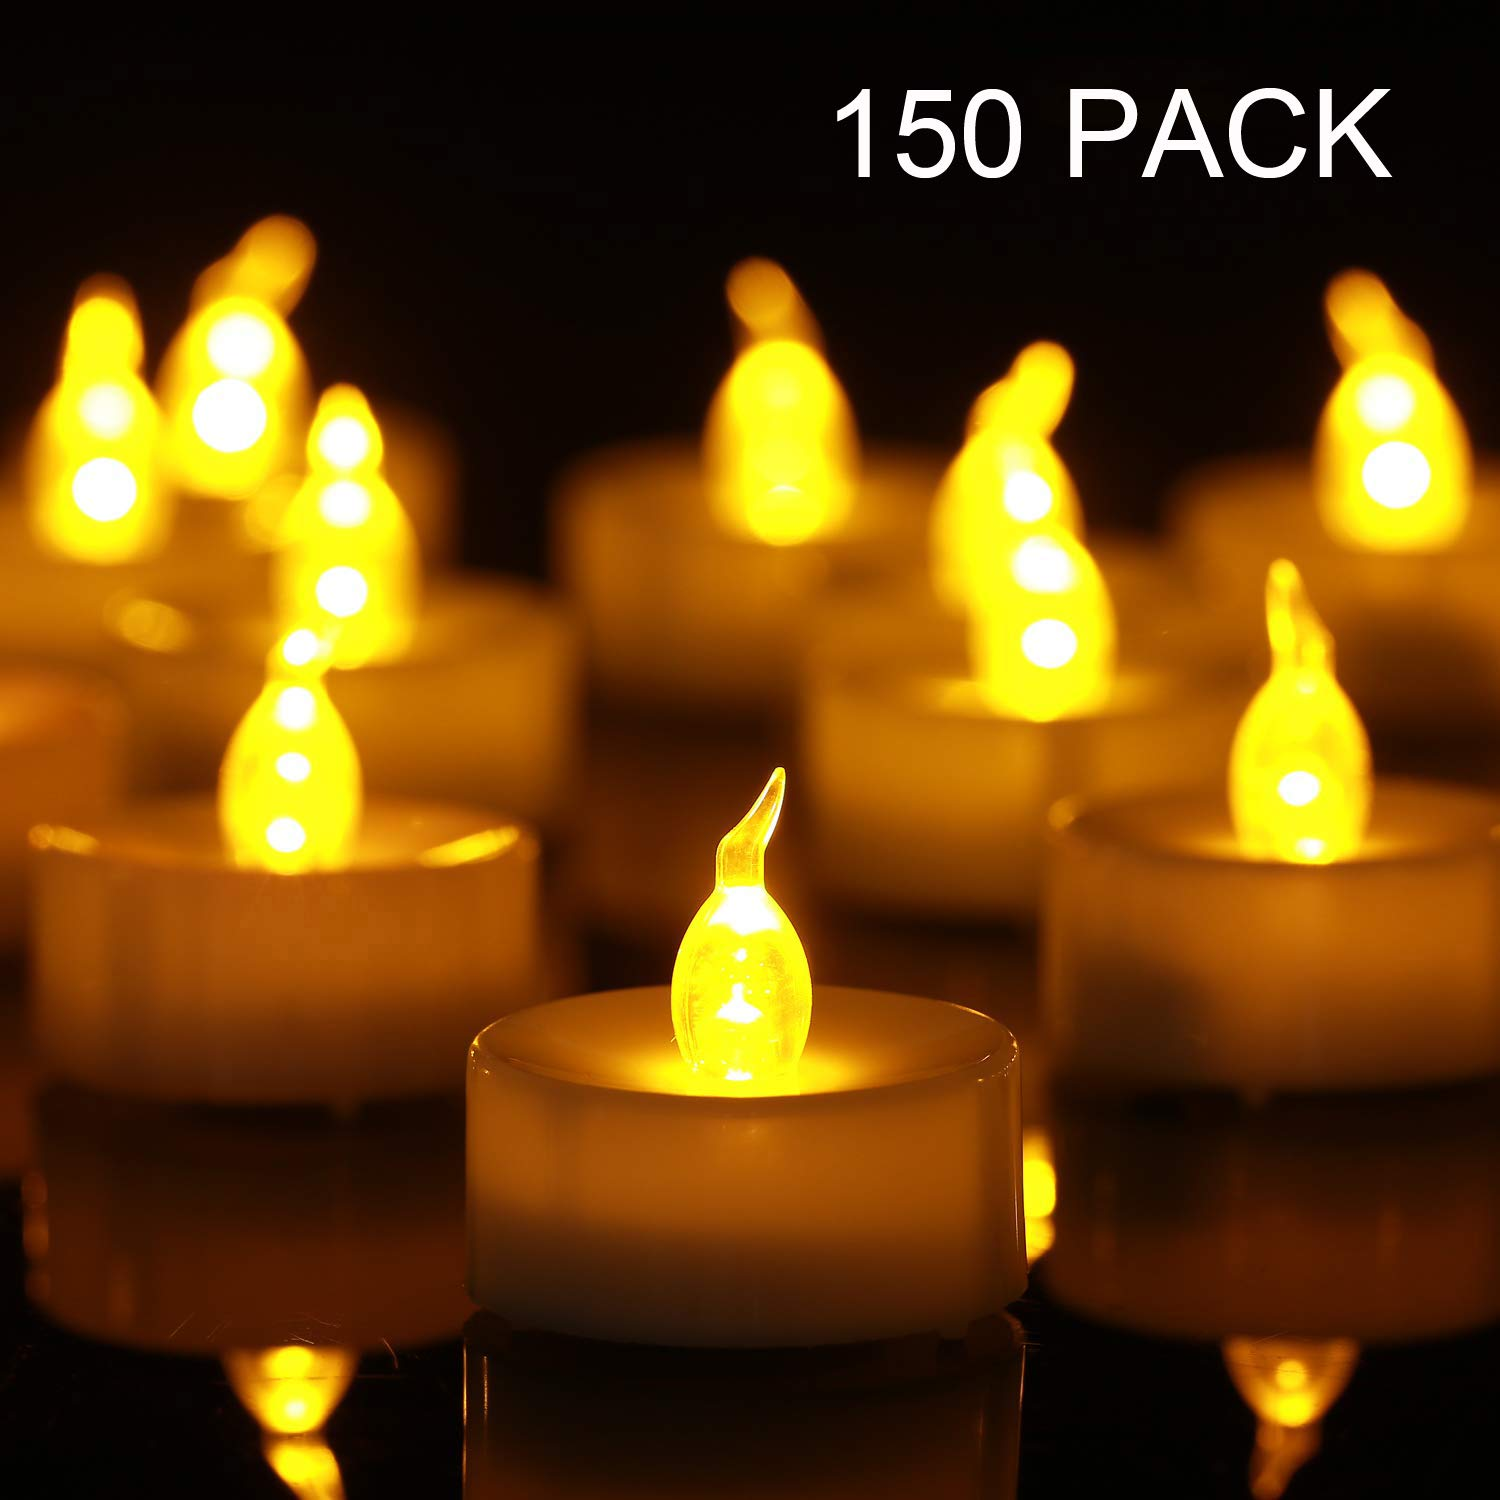 Tea Light, 150 Pack Flameless LED Tea Lights Candles Flickering Warm Yellow 100+ Hours Battery-Powered Tealight Candle. Ideal for Party, Wedding, Birthday, Gifts and Home Decoration (150 Pack) by TAITONG